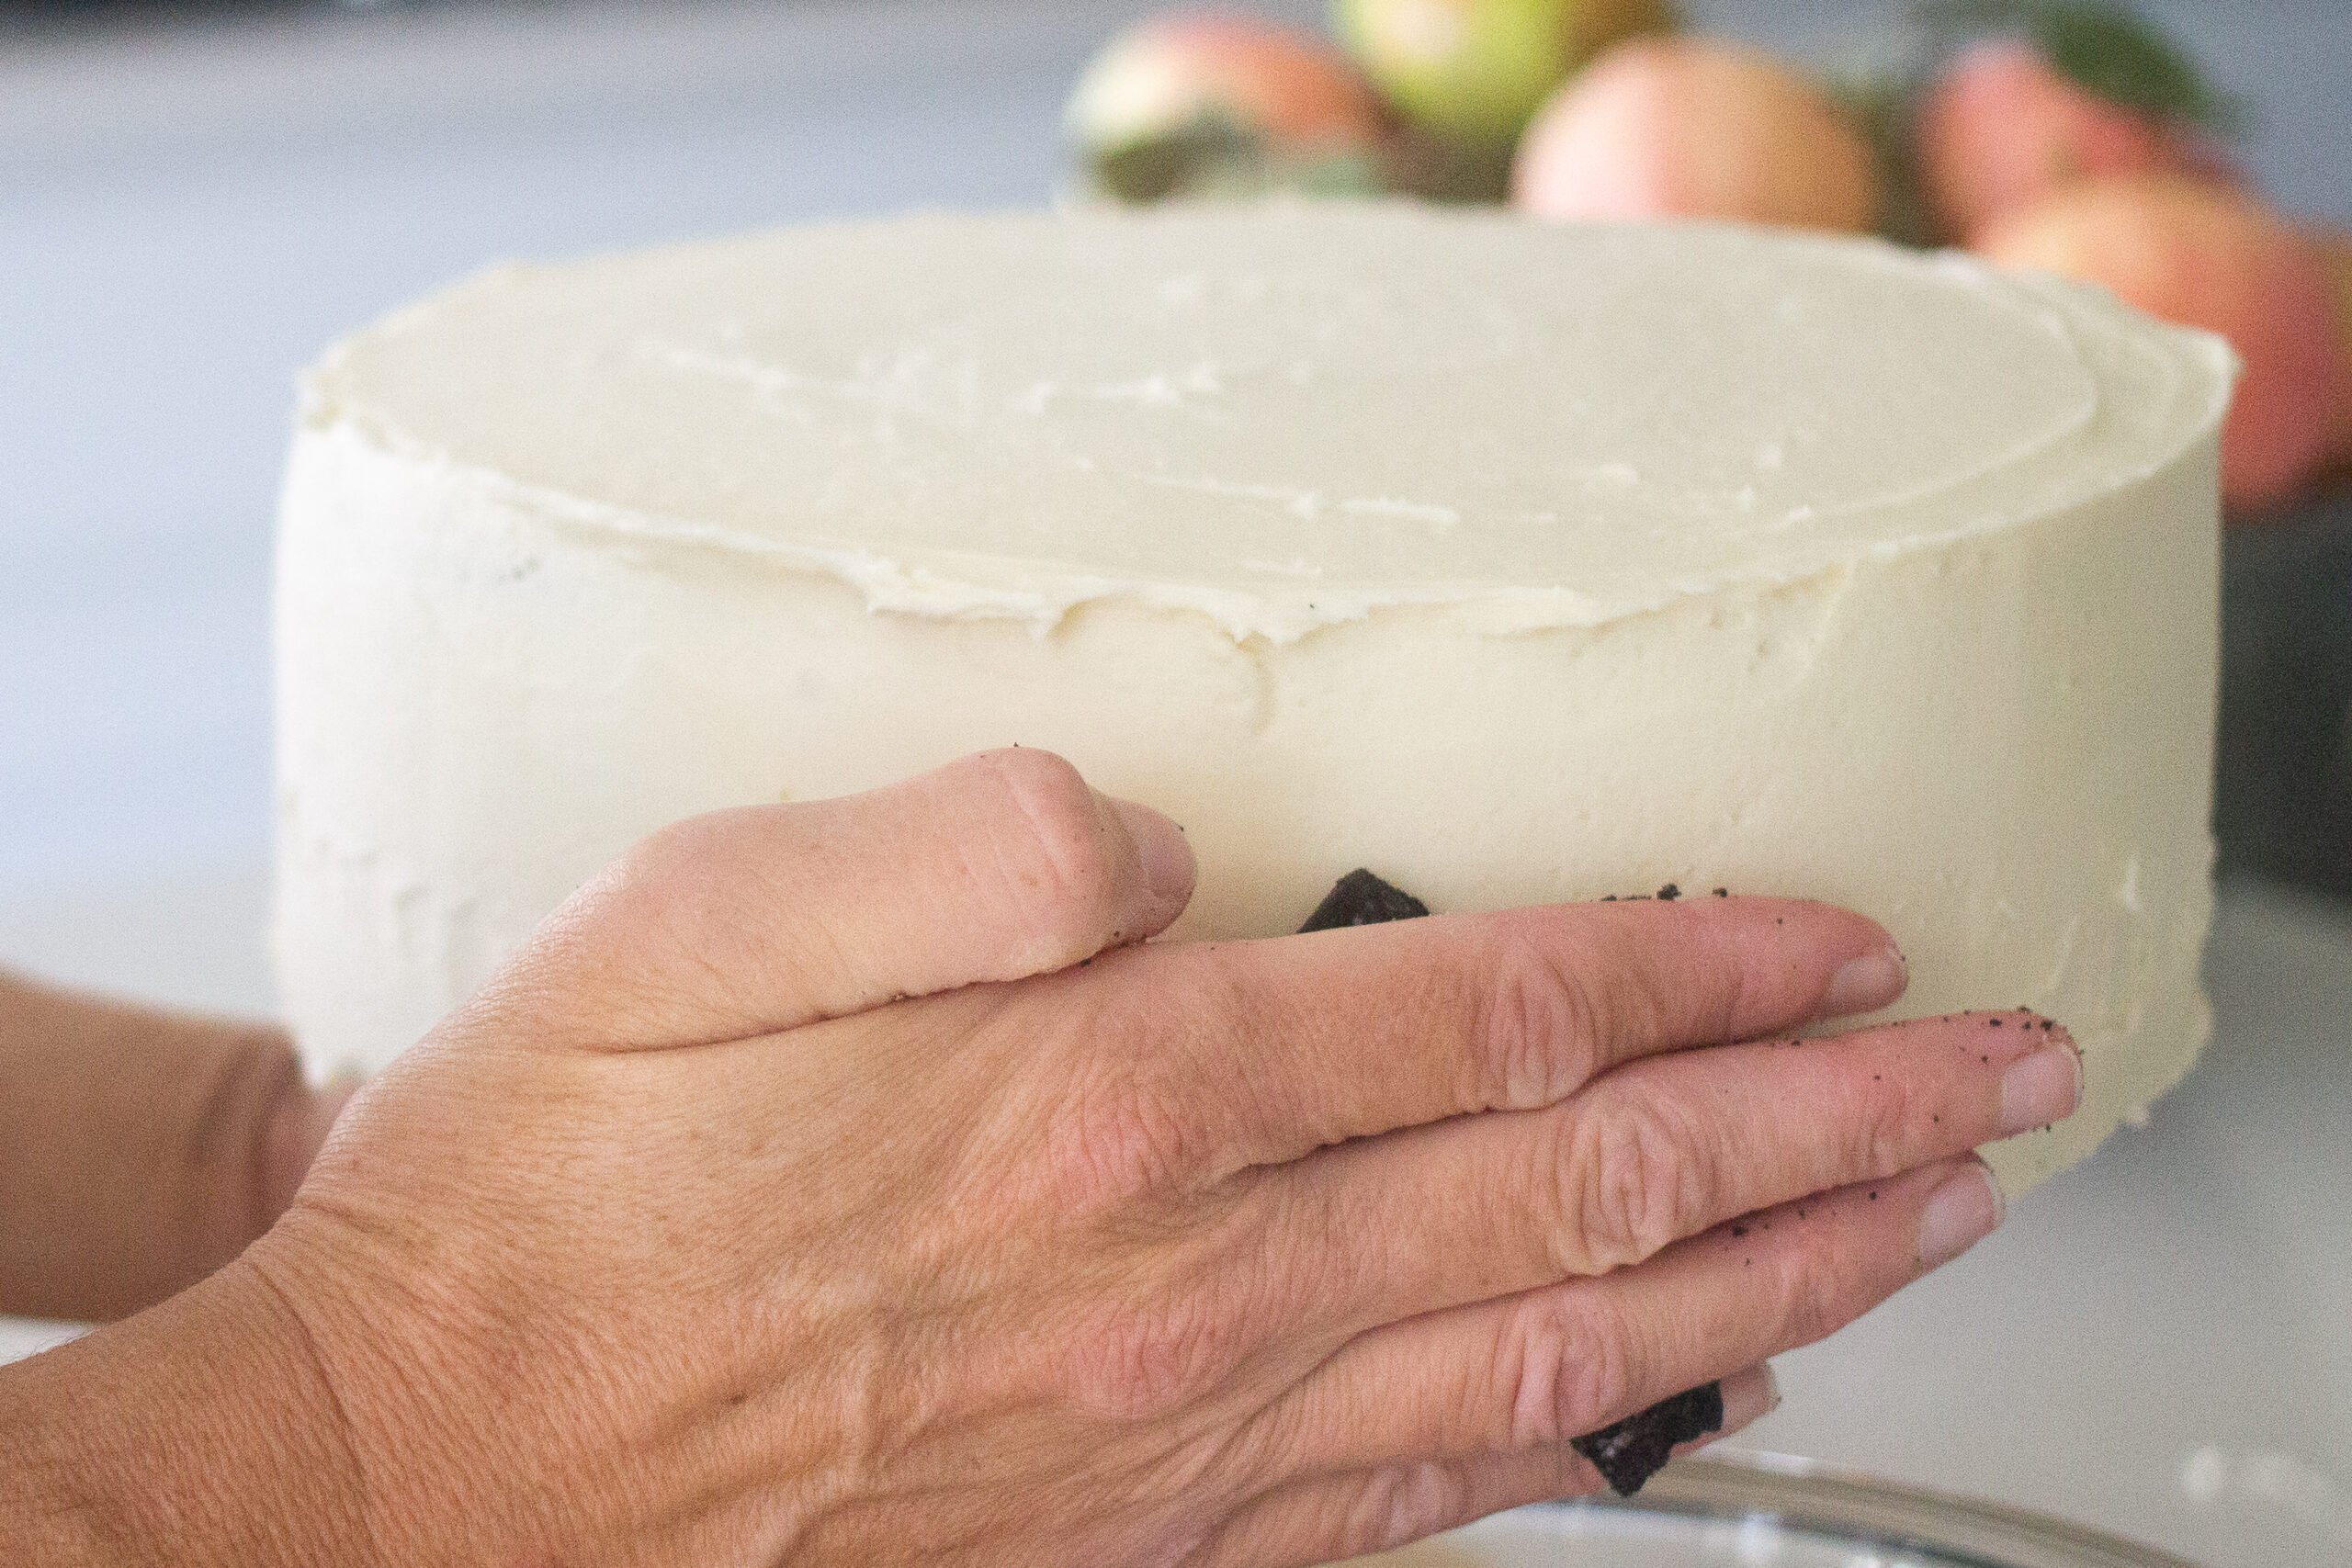 Hand placing cookie crumbs on side of cake.